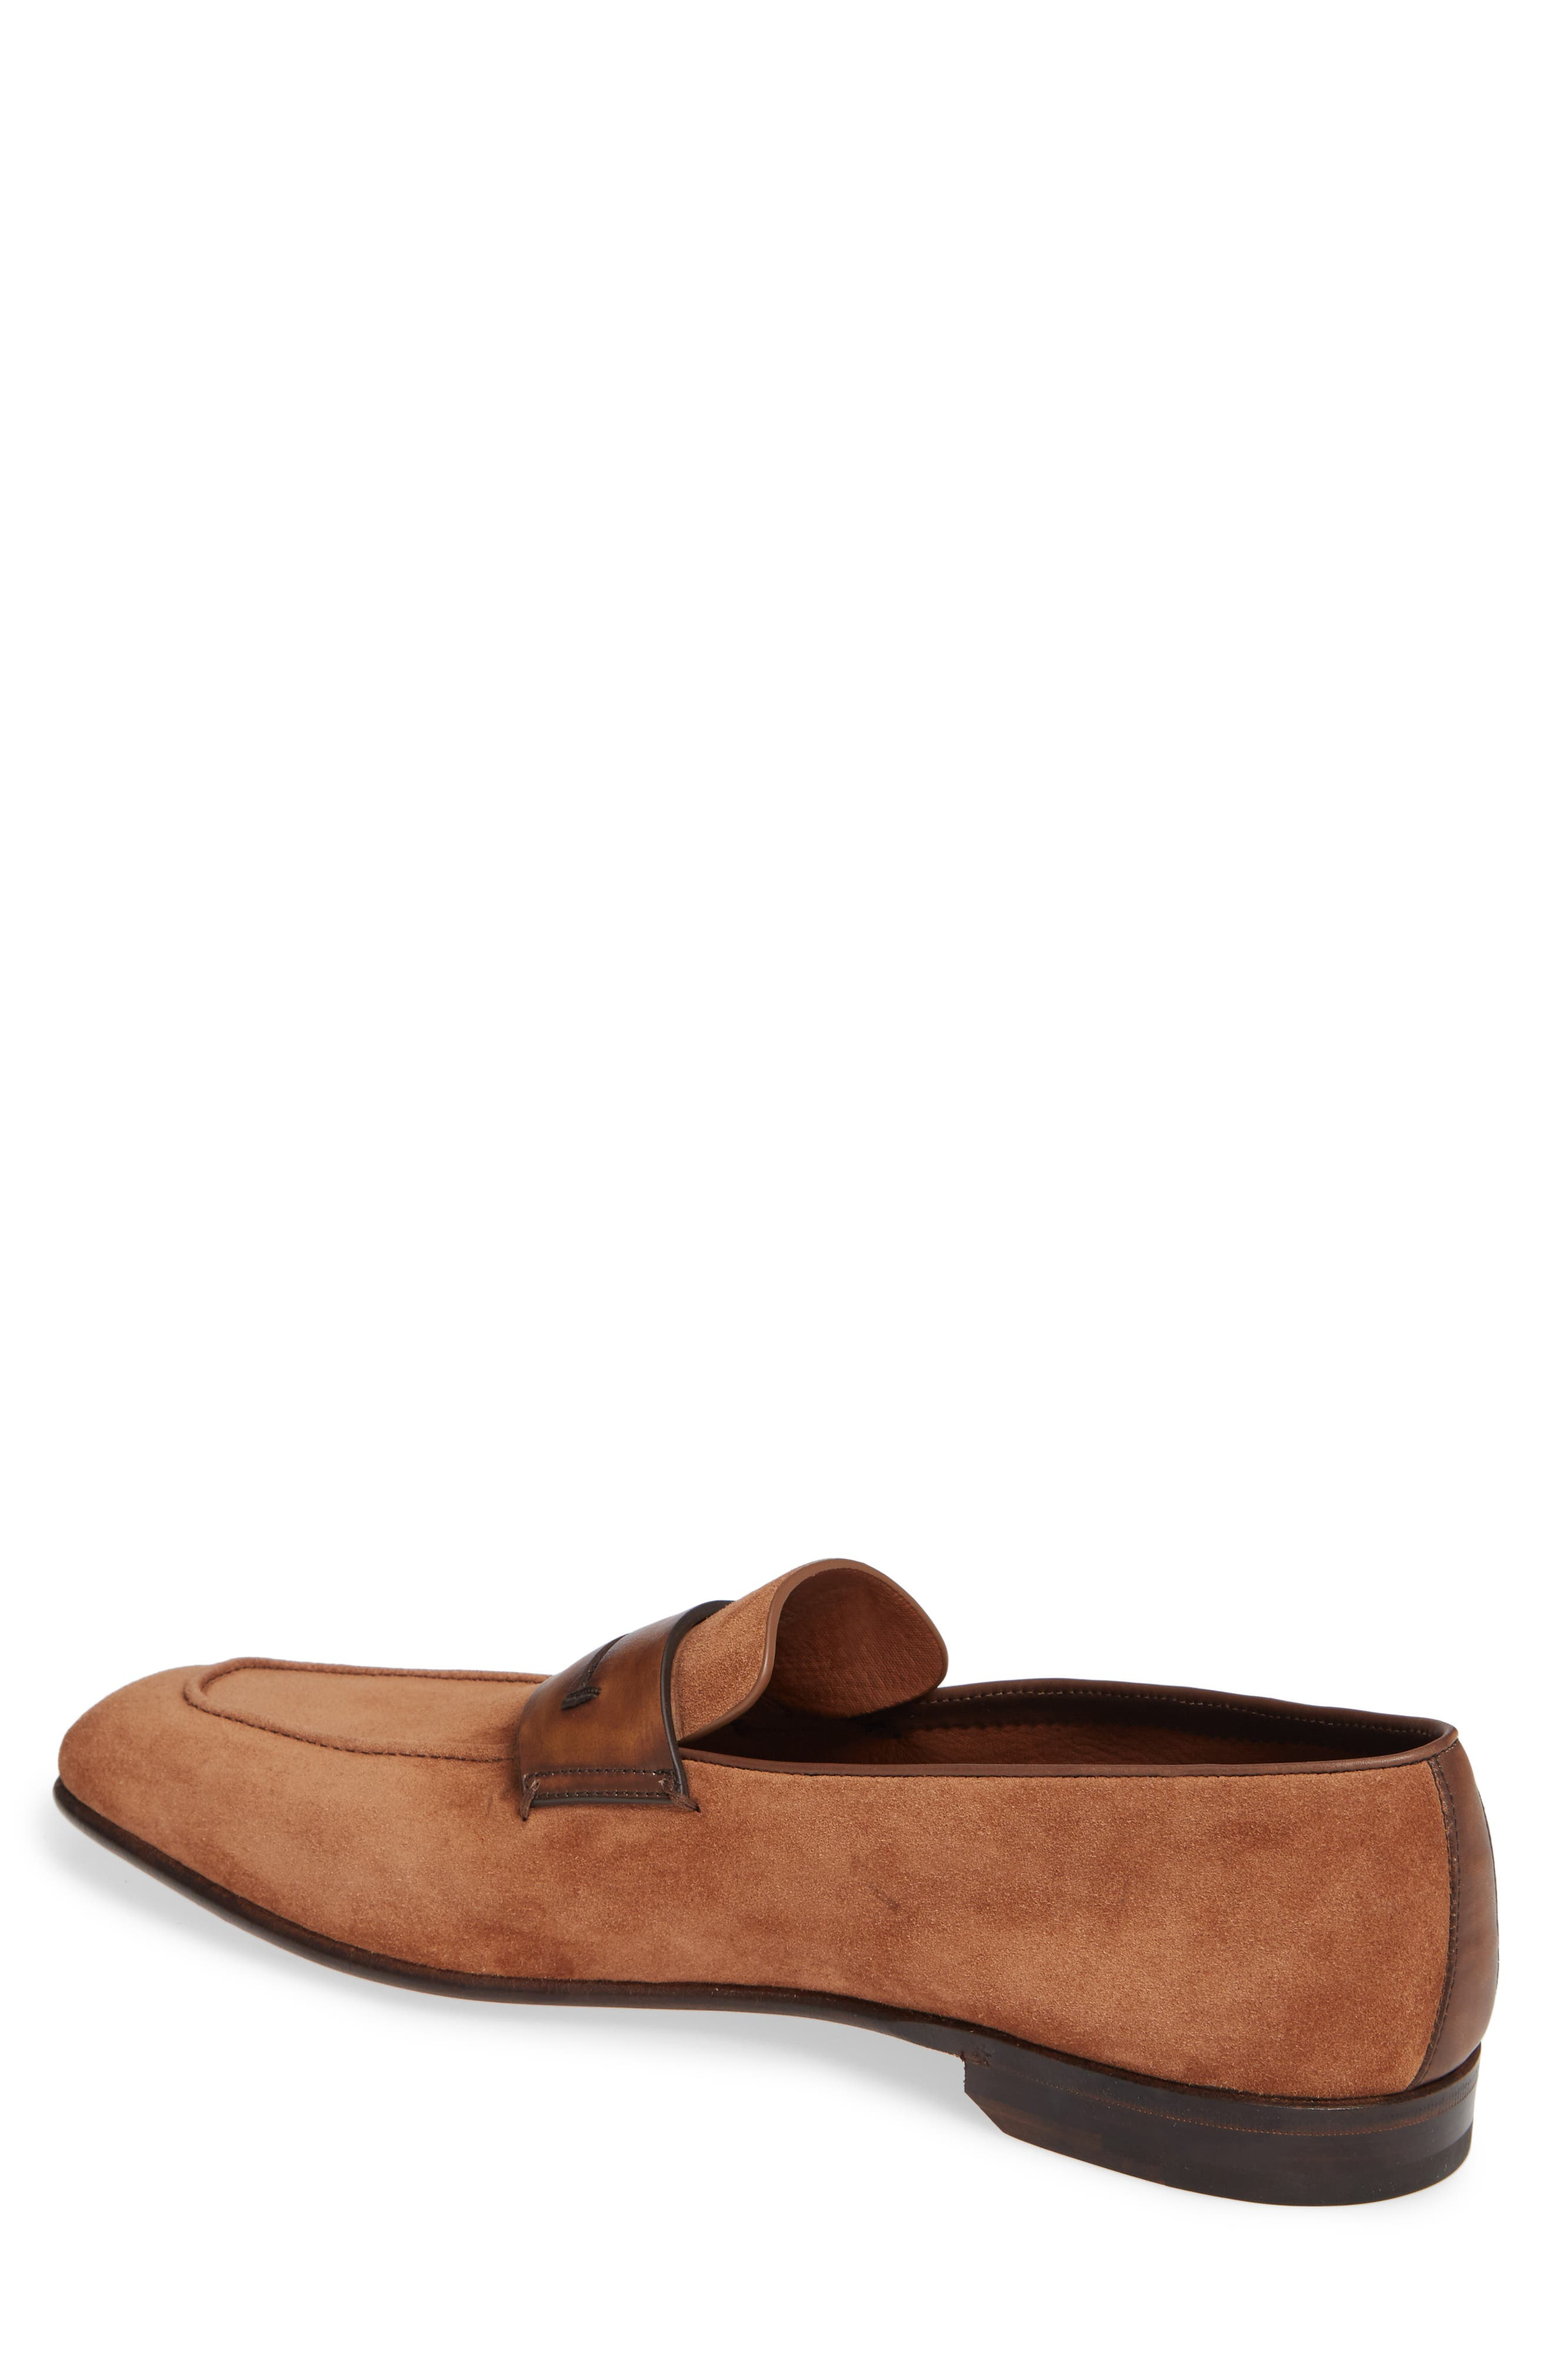 Penny Loafer,                             Alternate thumbnail 2, color,                             BROWN/BROWN